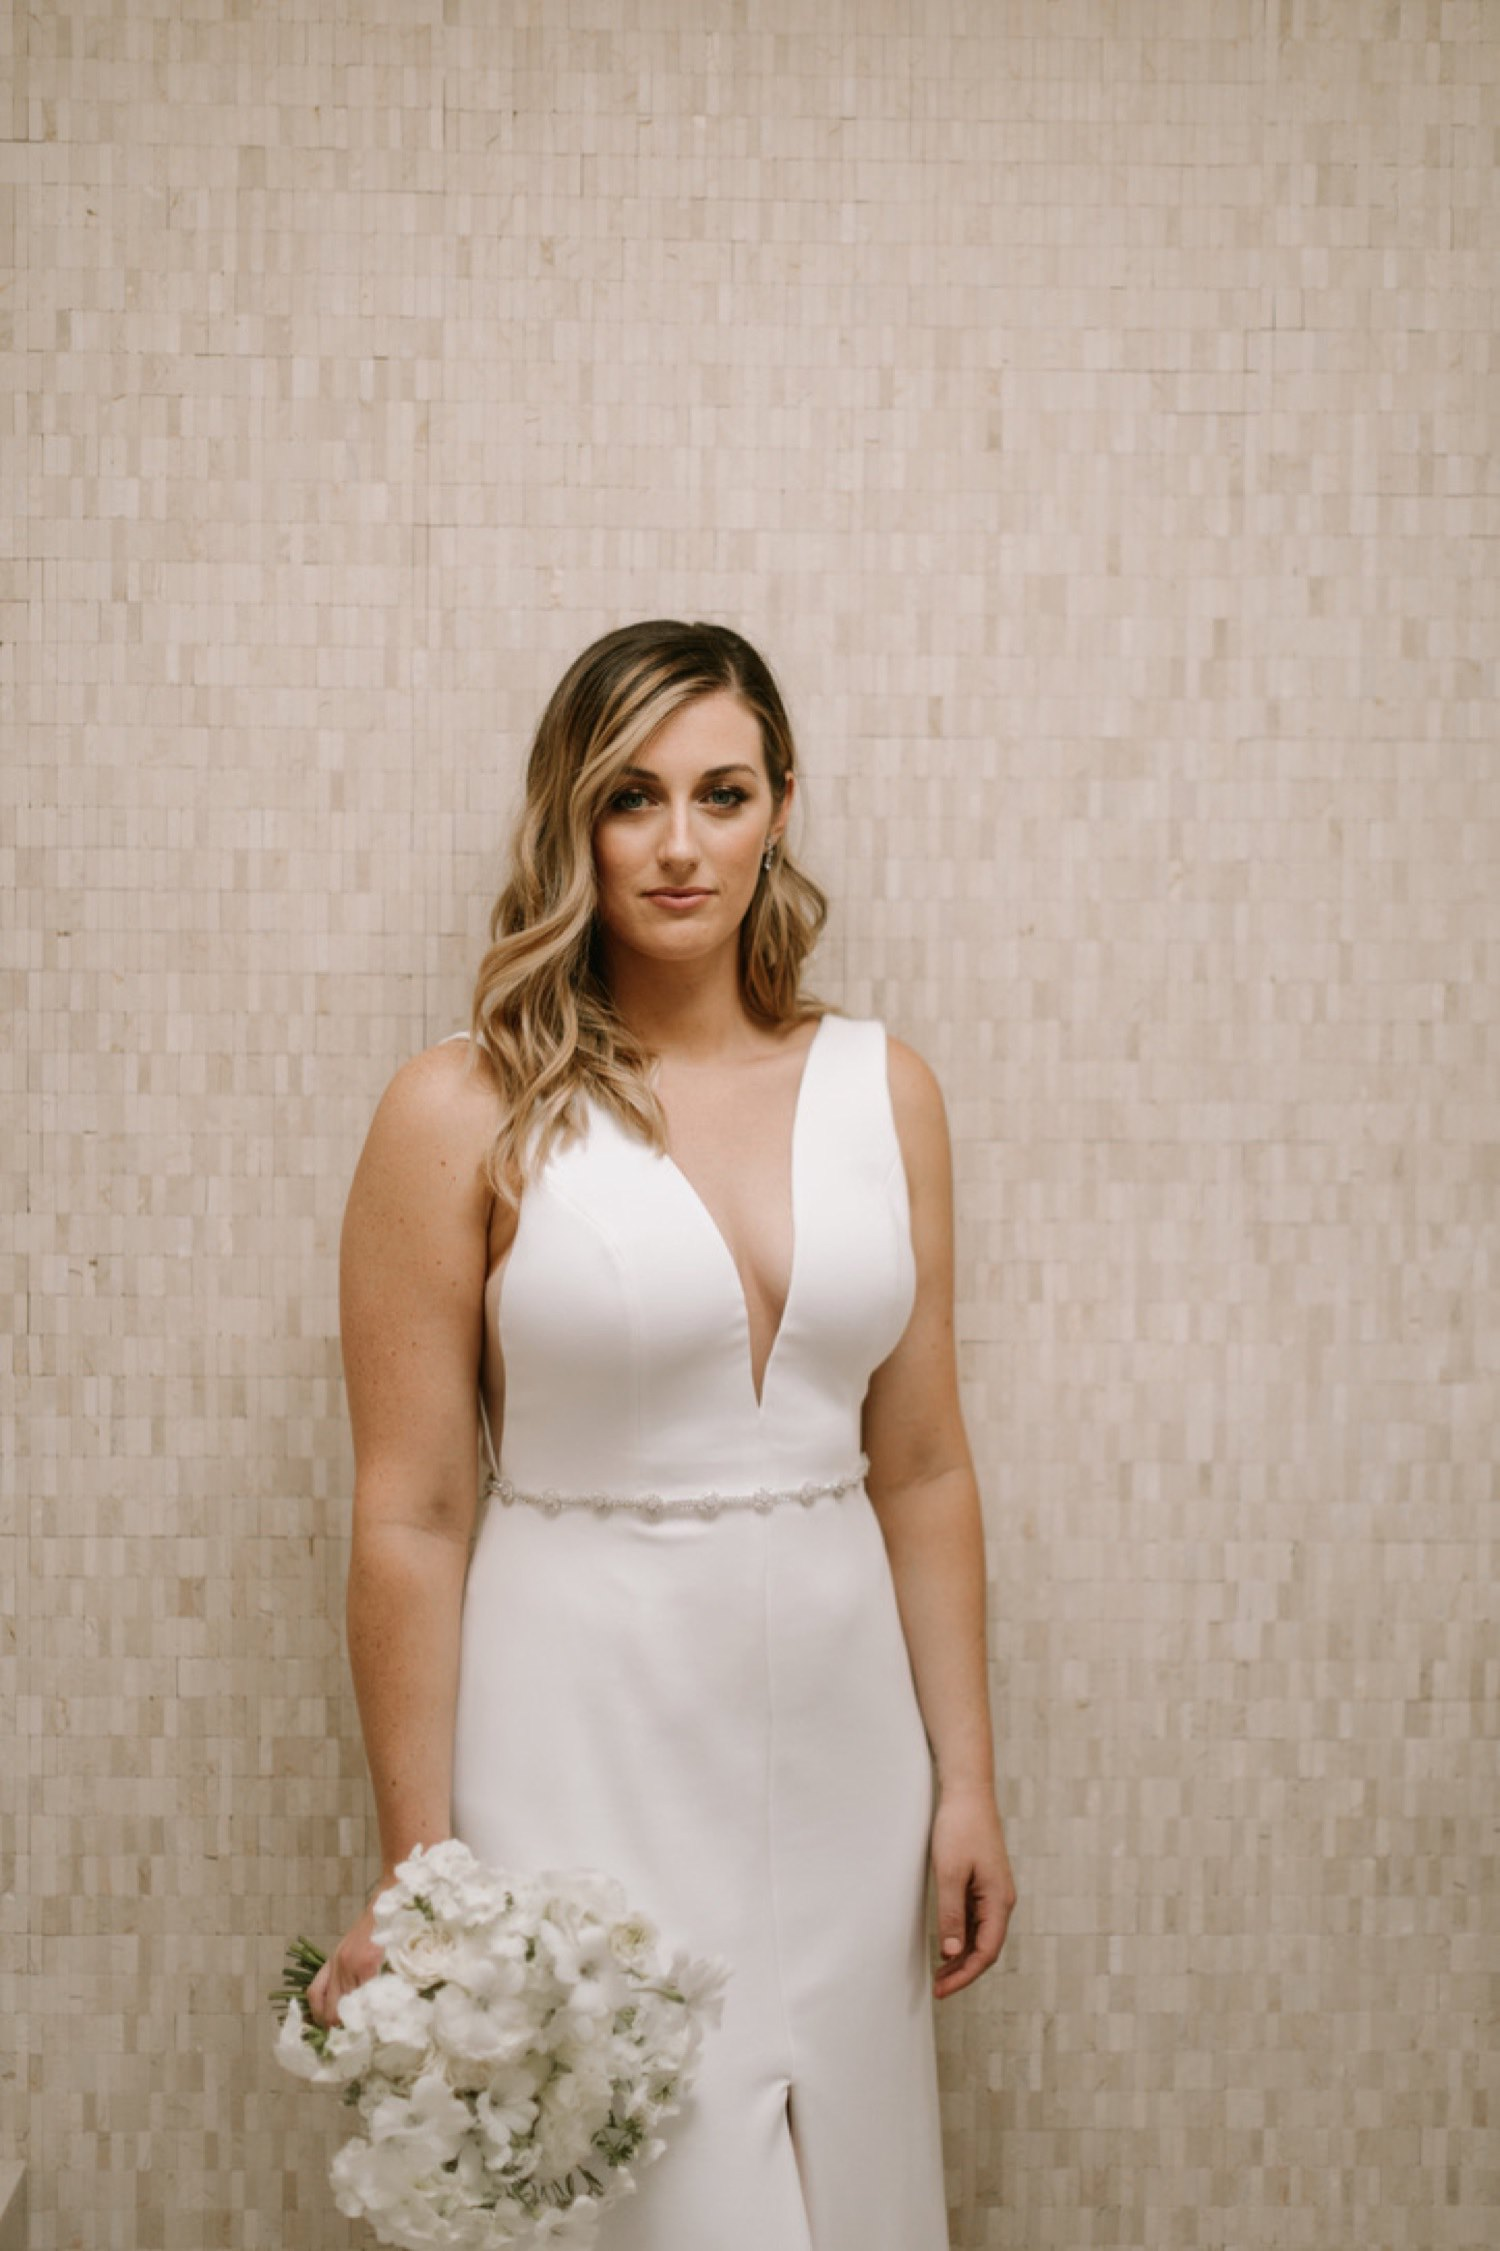 Chic bridal style with an all white bouquet at JM Cellars in Woodinville, WA